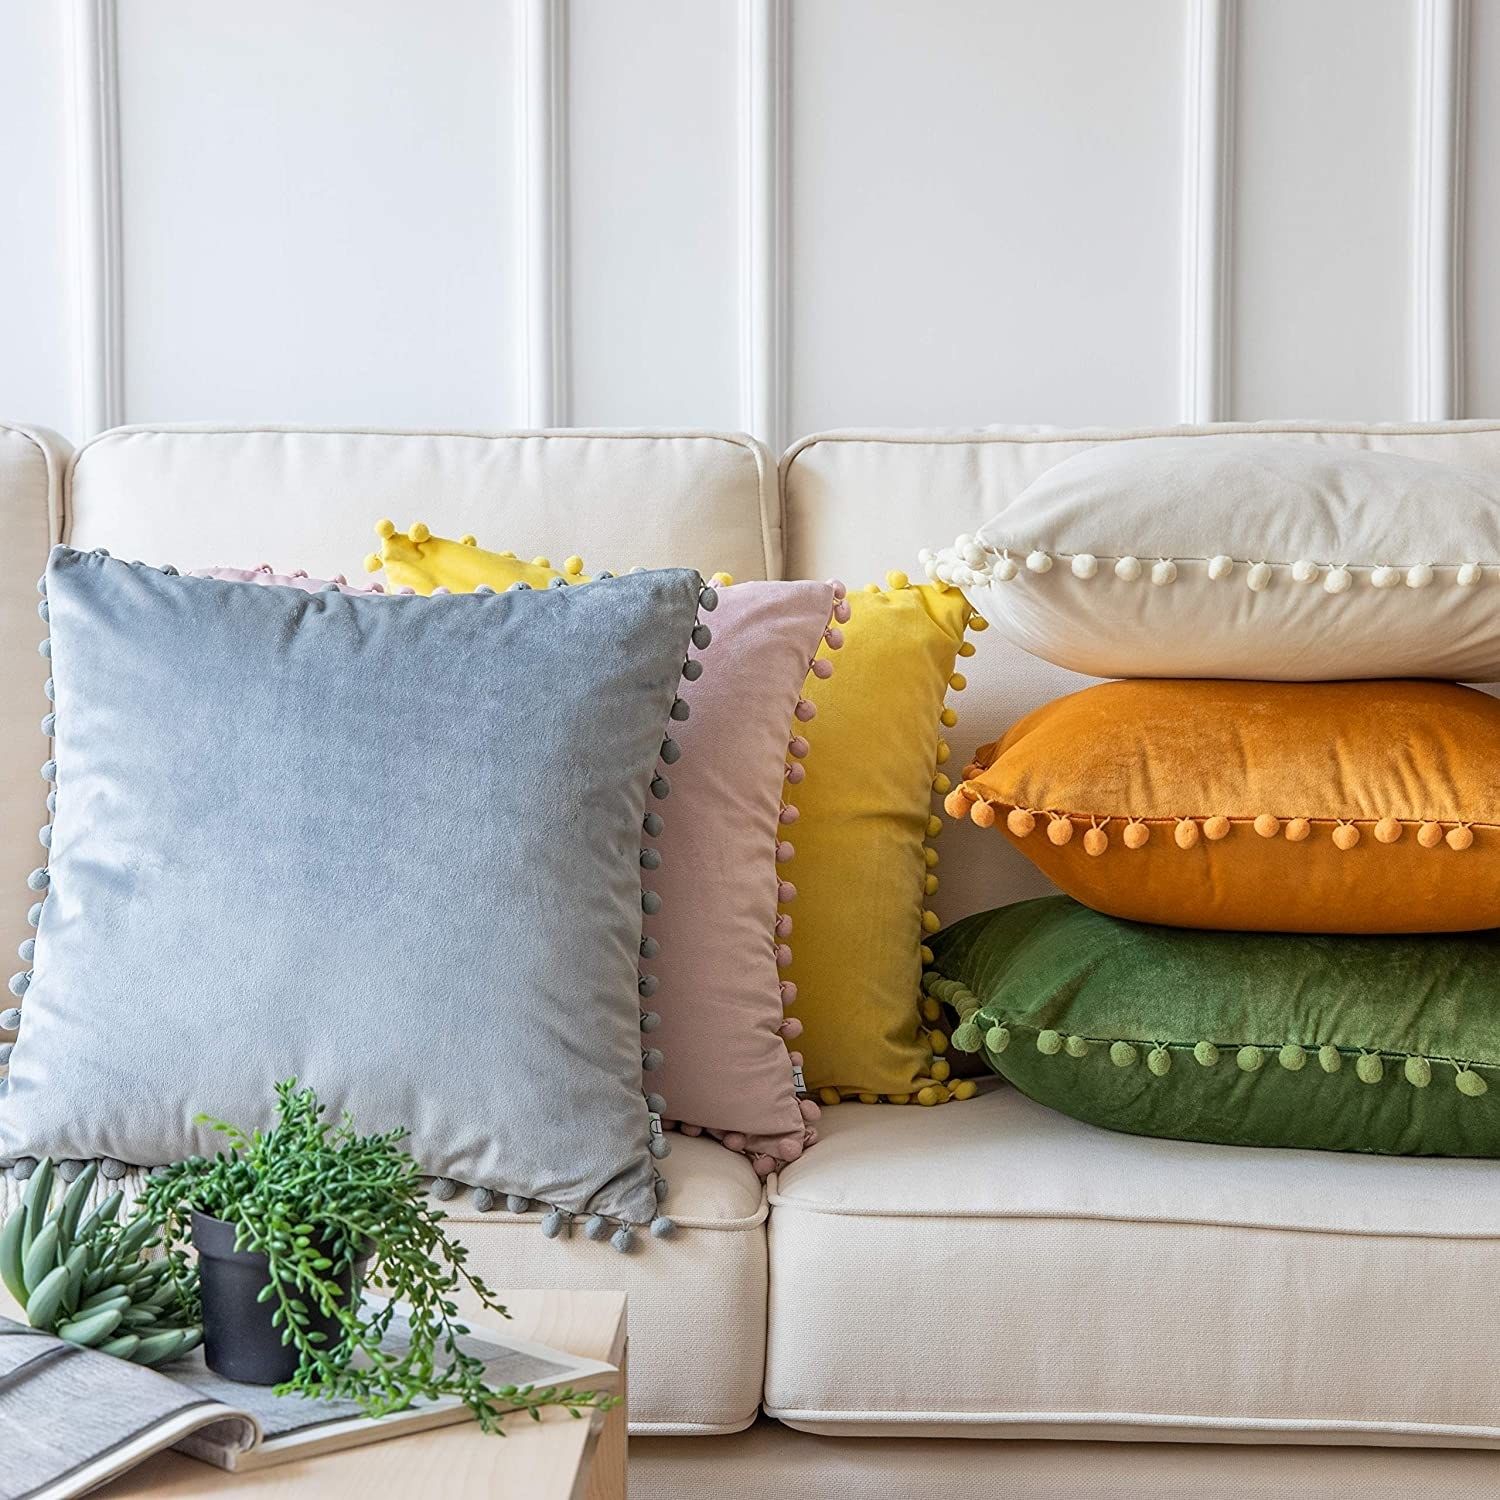 stack of velvet pillows on a couch